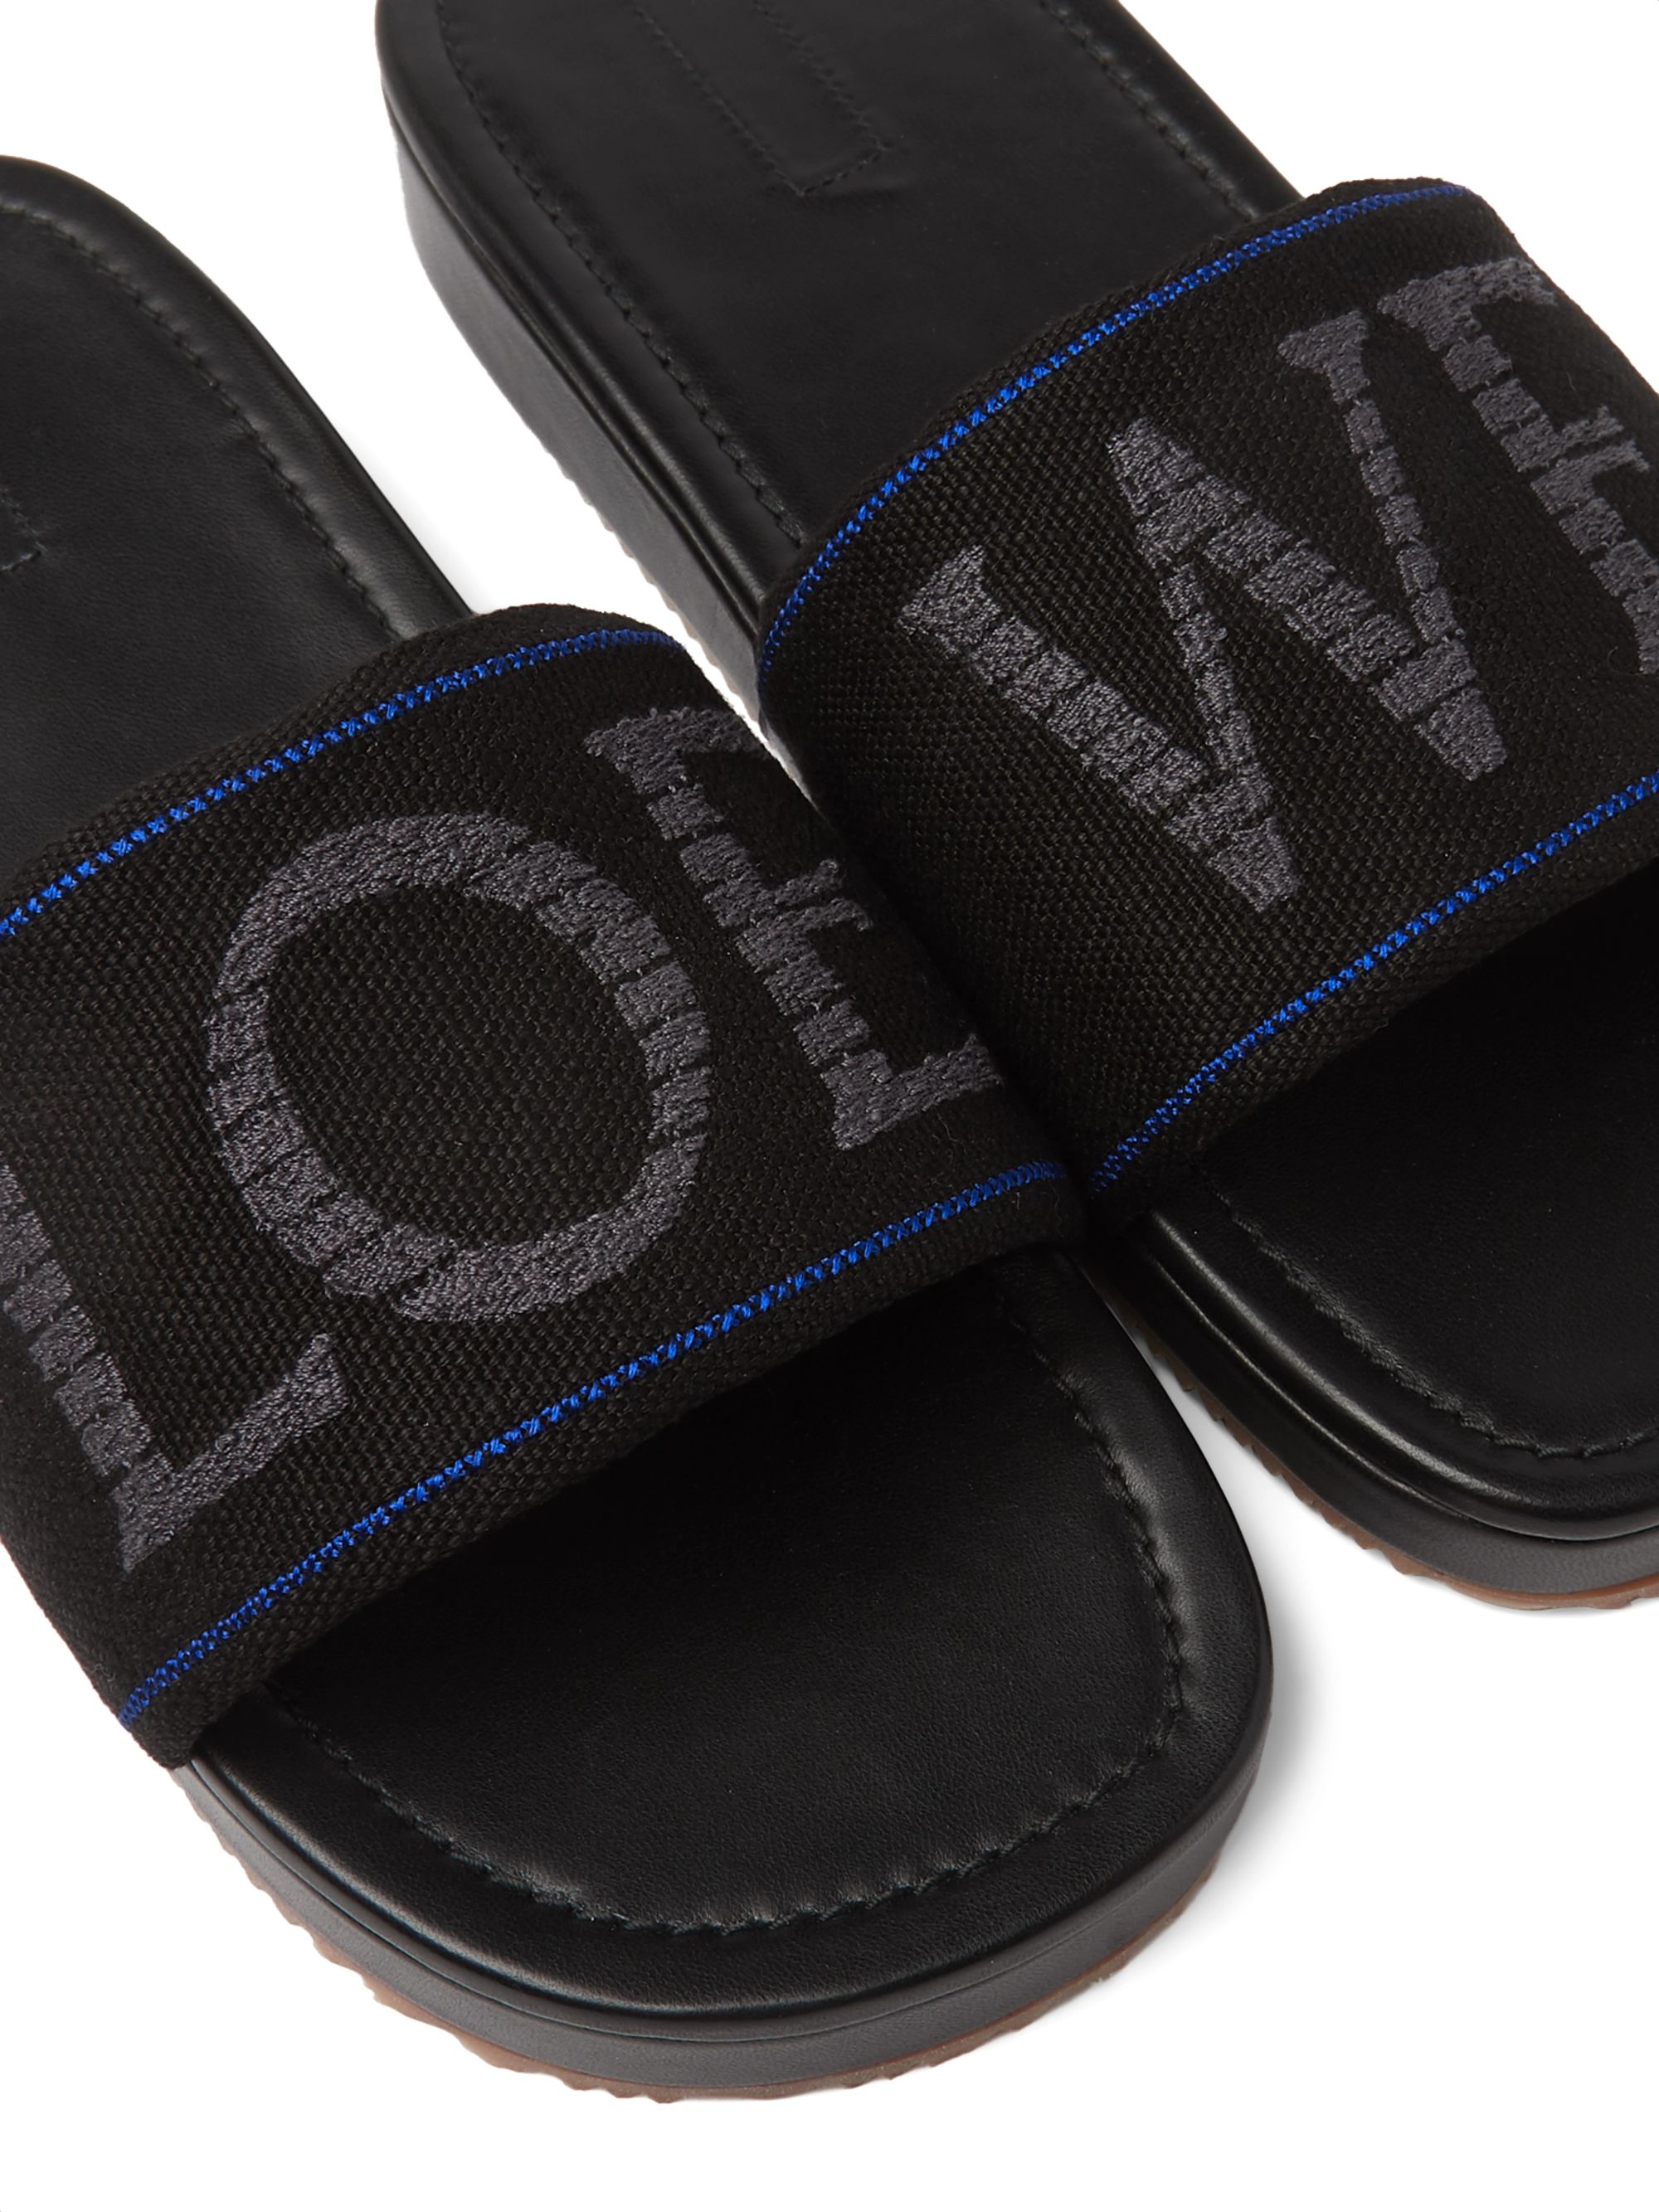 Loewe + Paula's Ibiza Logo-Embroidered Canvas Slides